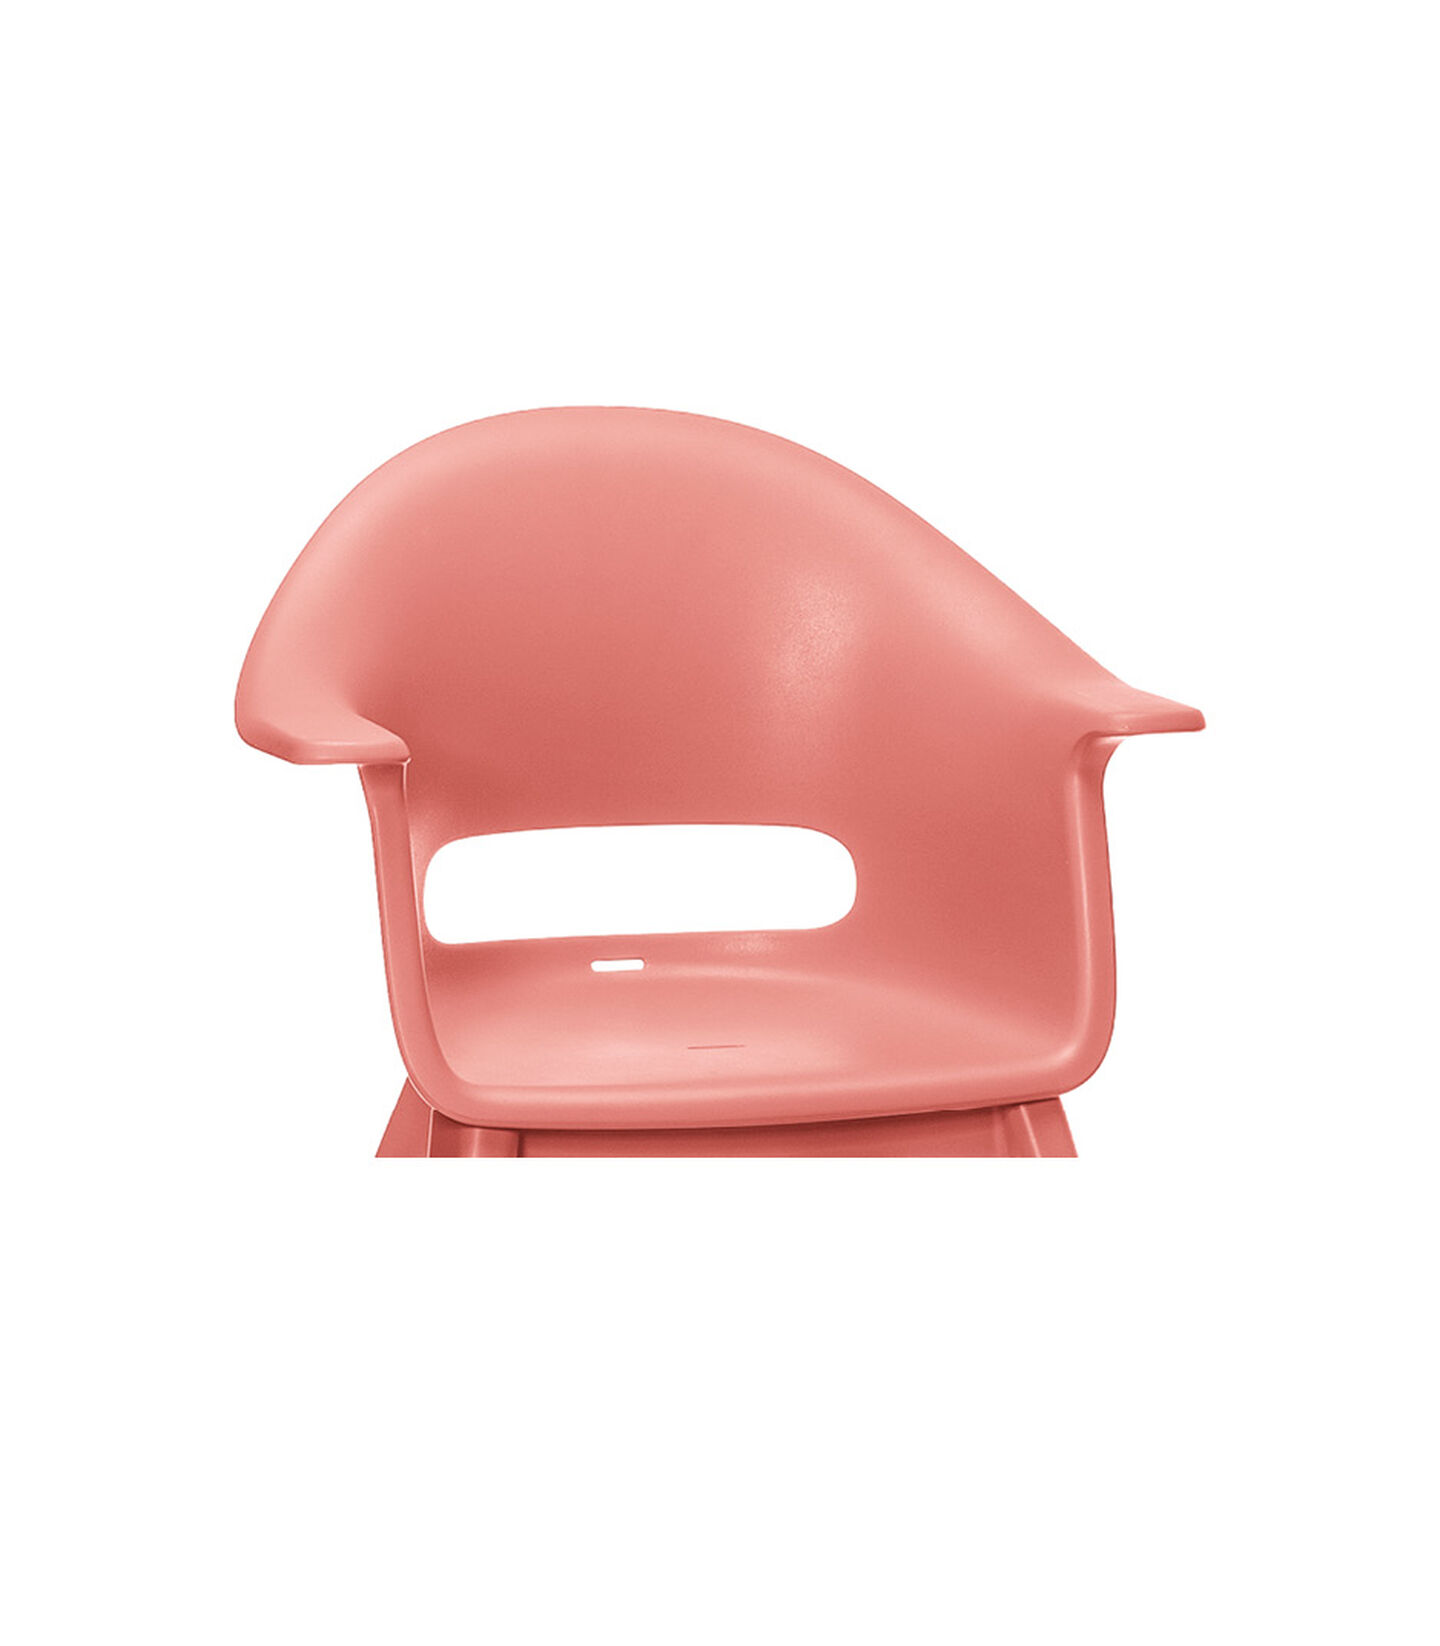 Stokke® Clikk™ Seat Sunny Coral, Sunny Coral, mainview view 1